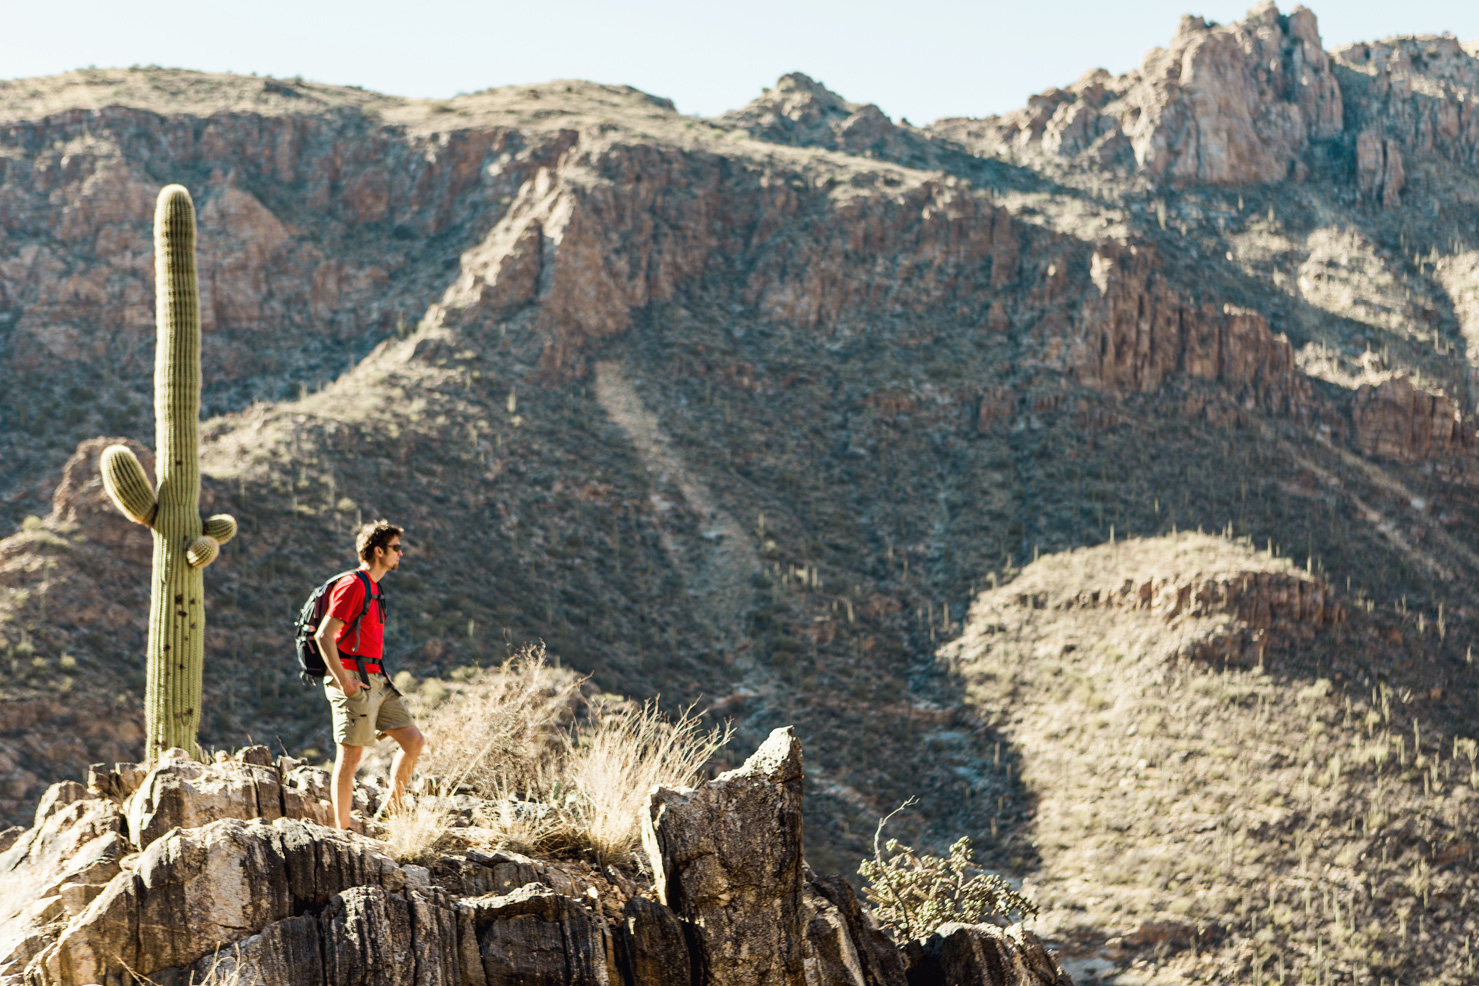 CindyGiovagnoli_Tucson_Arizona_Sabino_Canyon_Phone_Line_Trail_Uinta_Brewing_saguaro_cactus_desert_hiking-008.jpg